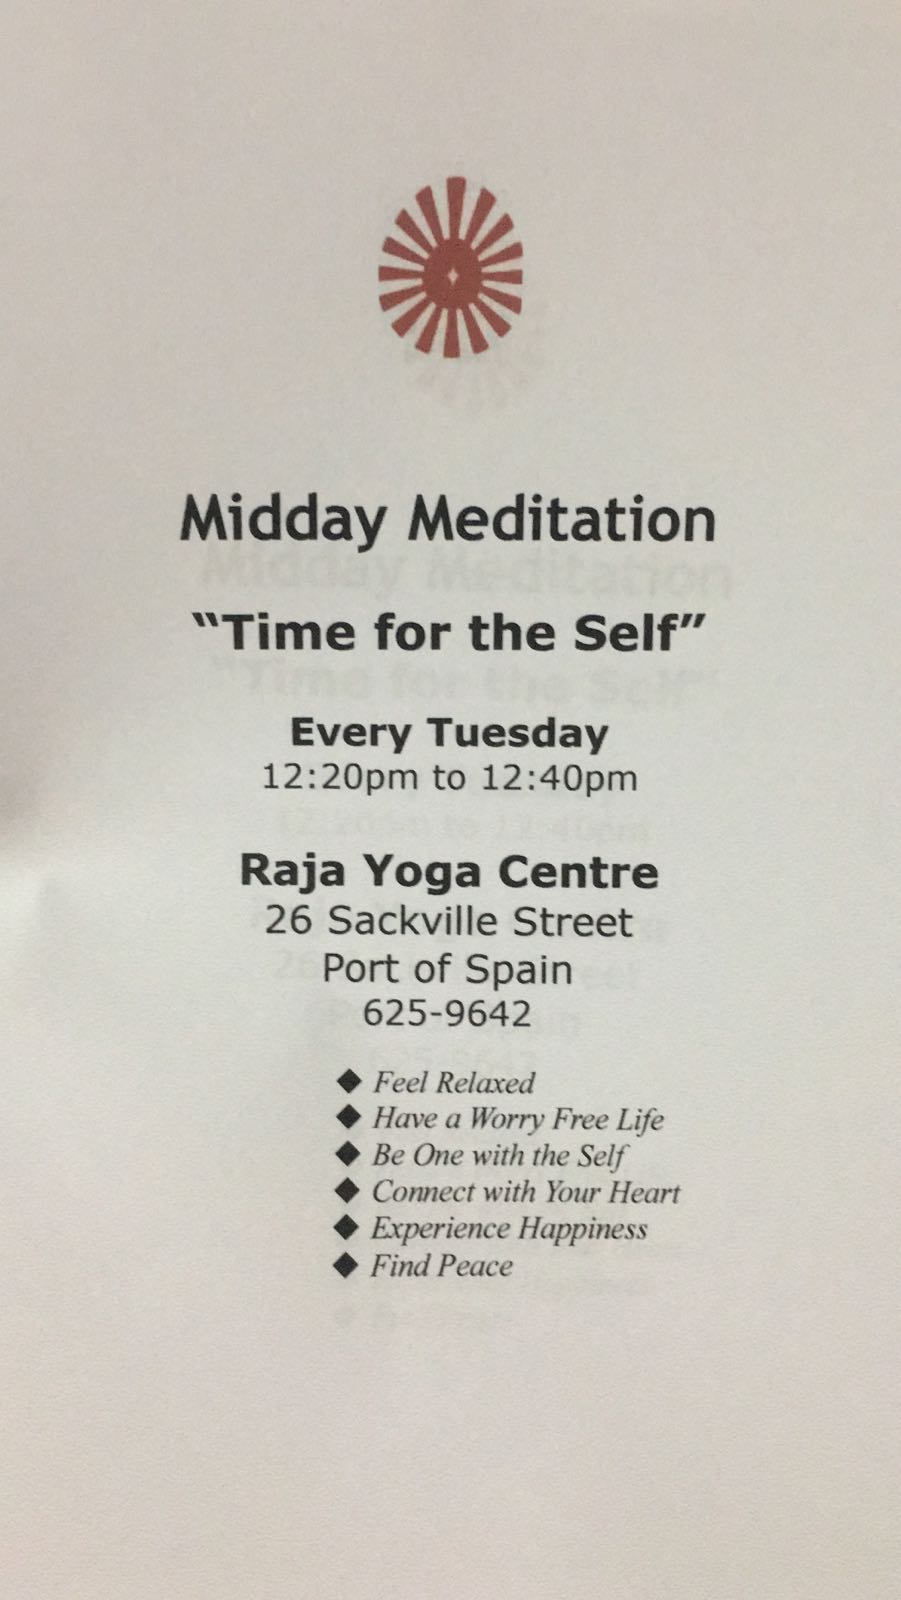 Midday Meditation - Time for the Self